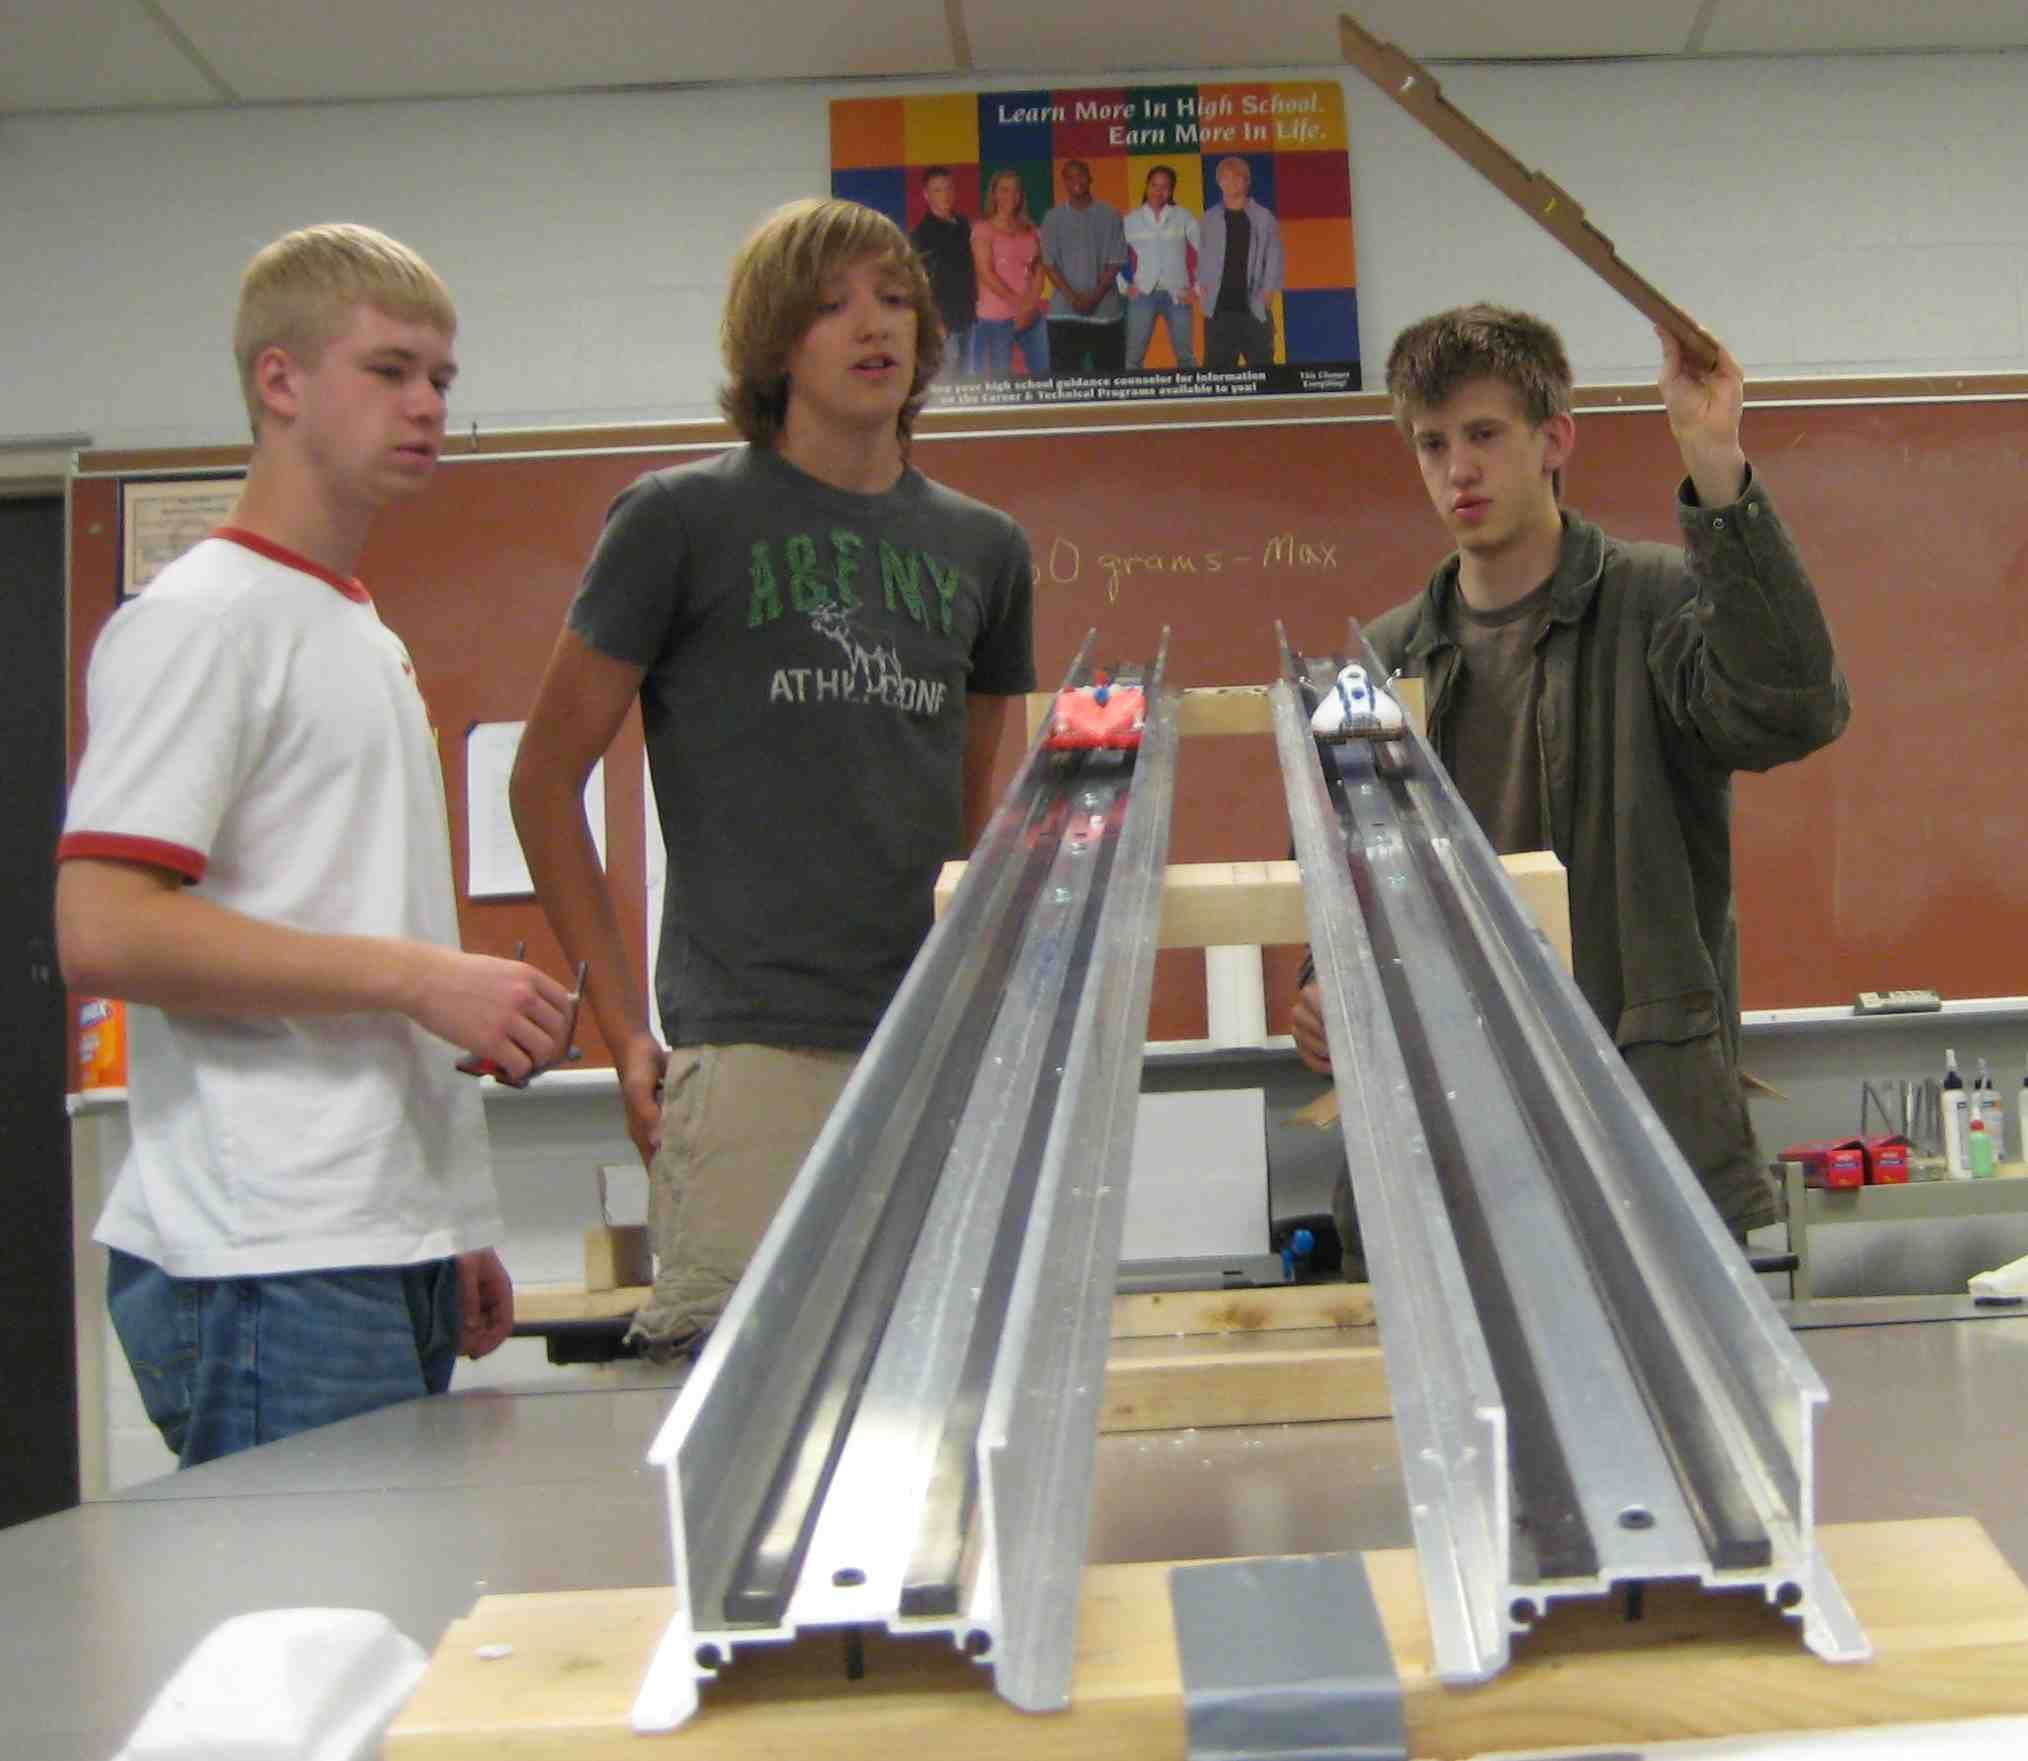 maglev vehicles: maglev is short for magnetic levitation in which